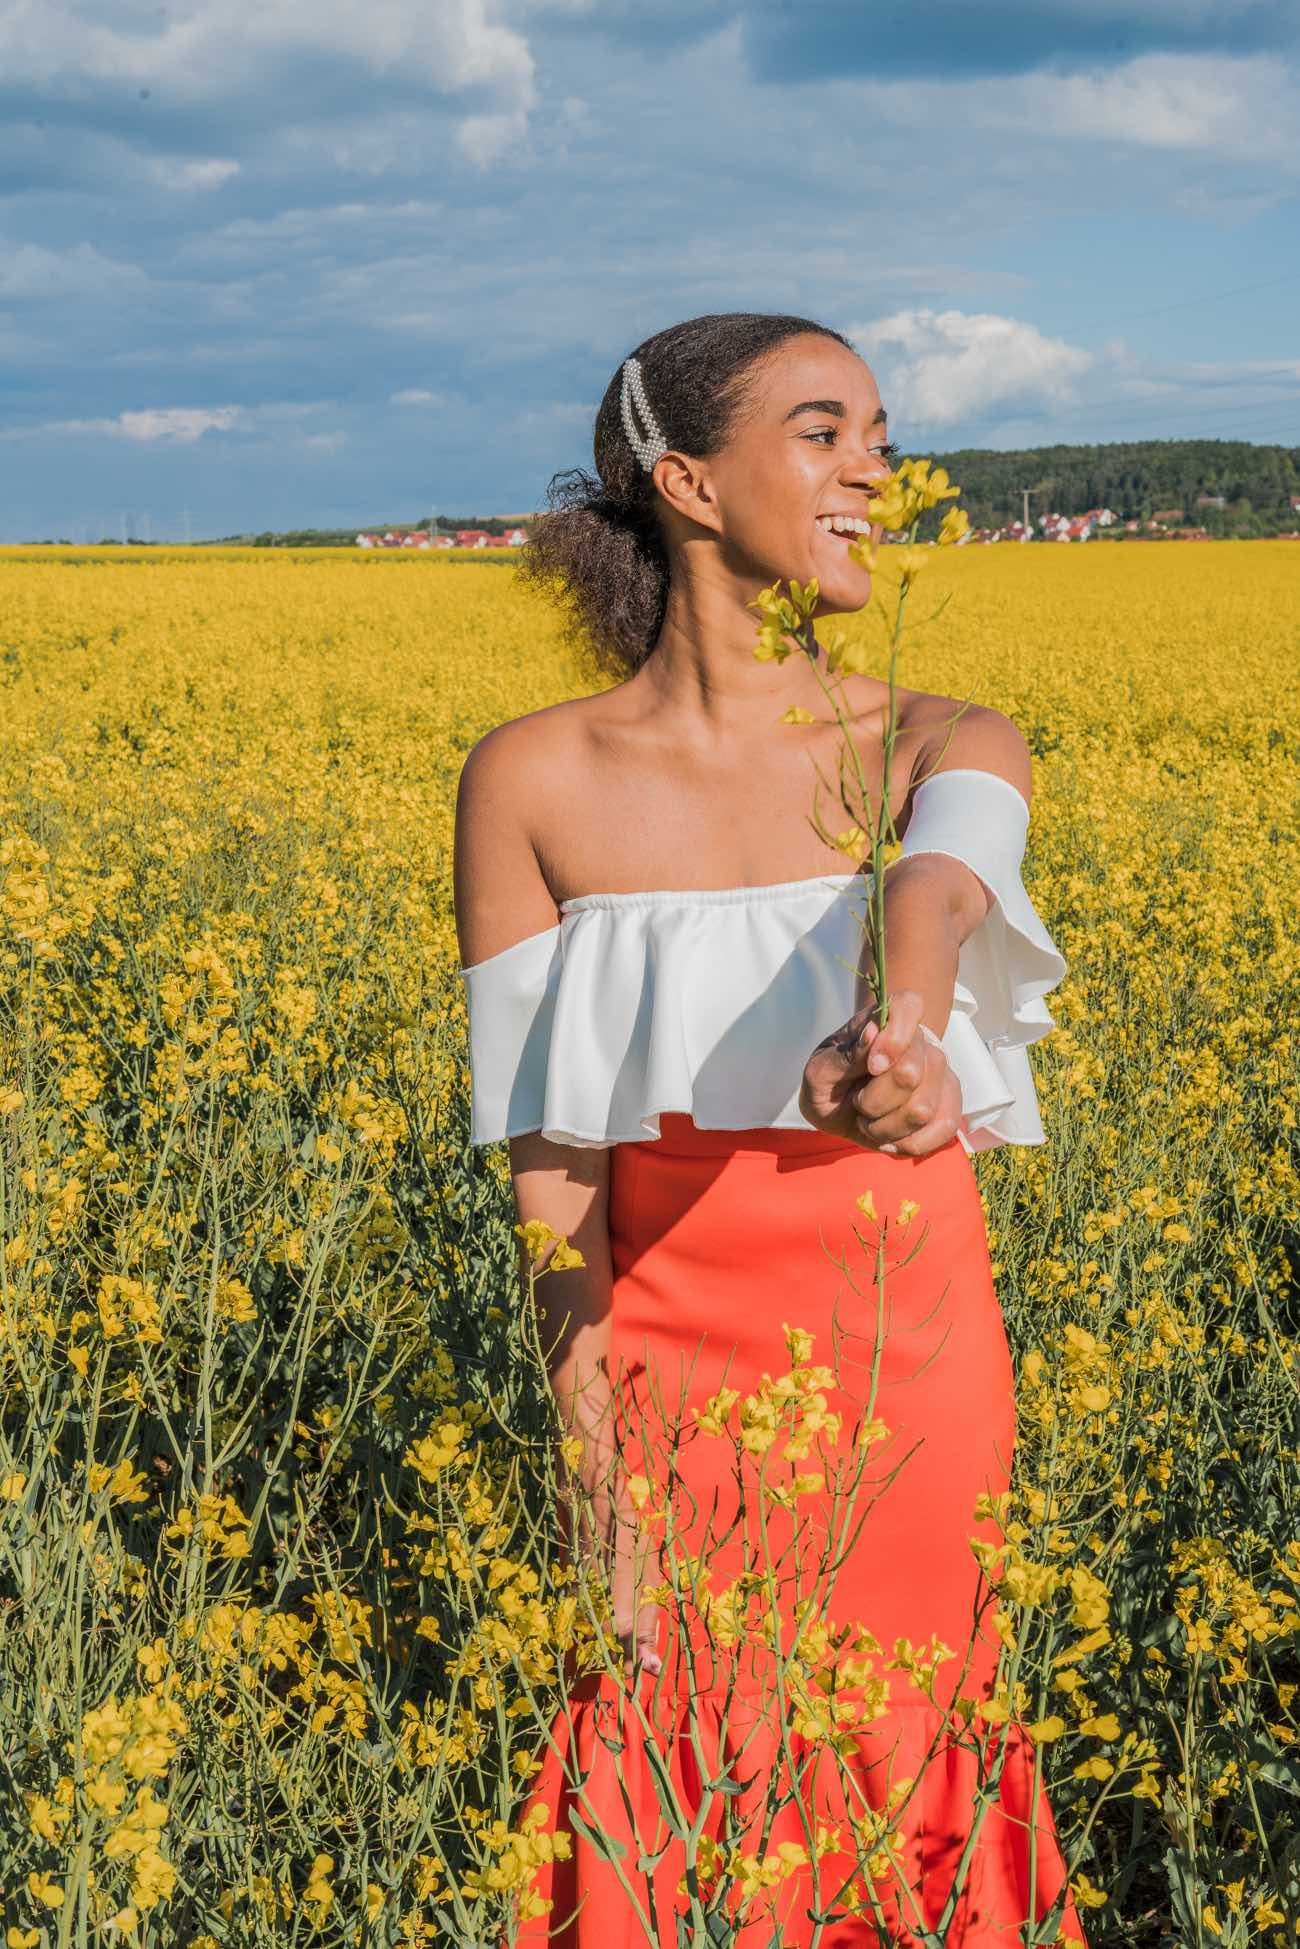 girl doing an epic summer activity in a flower field